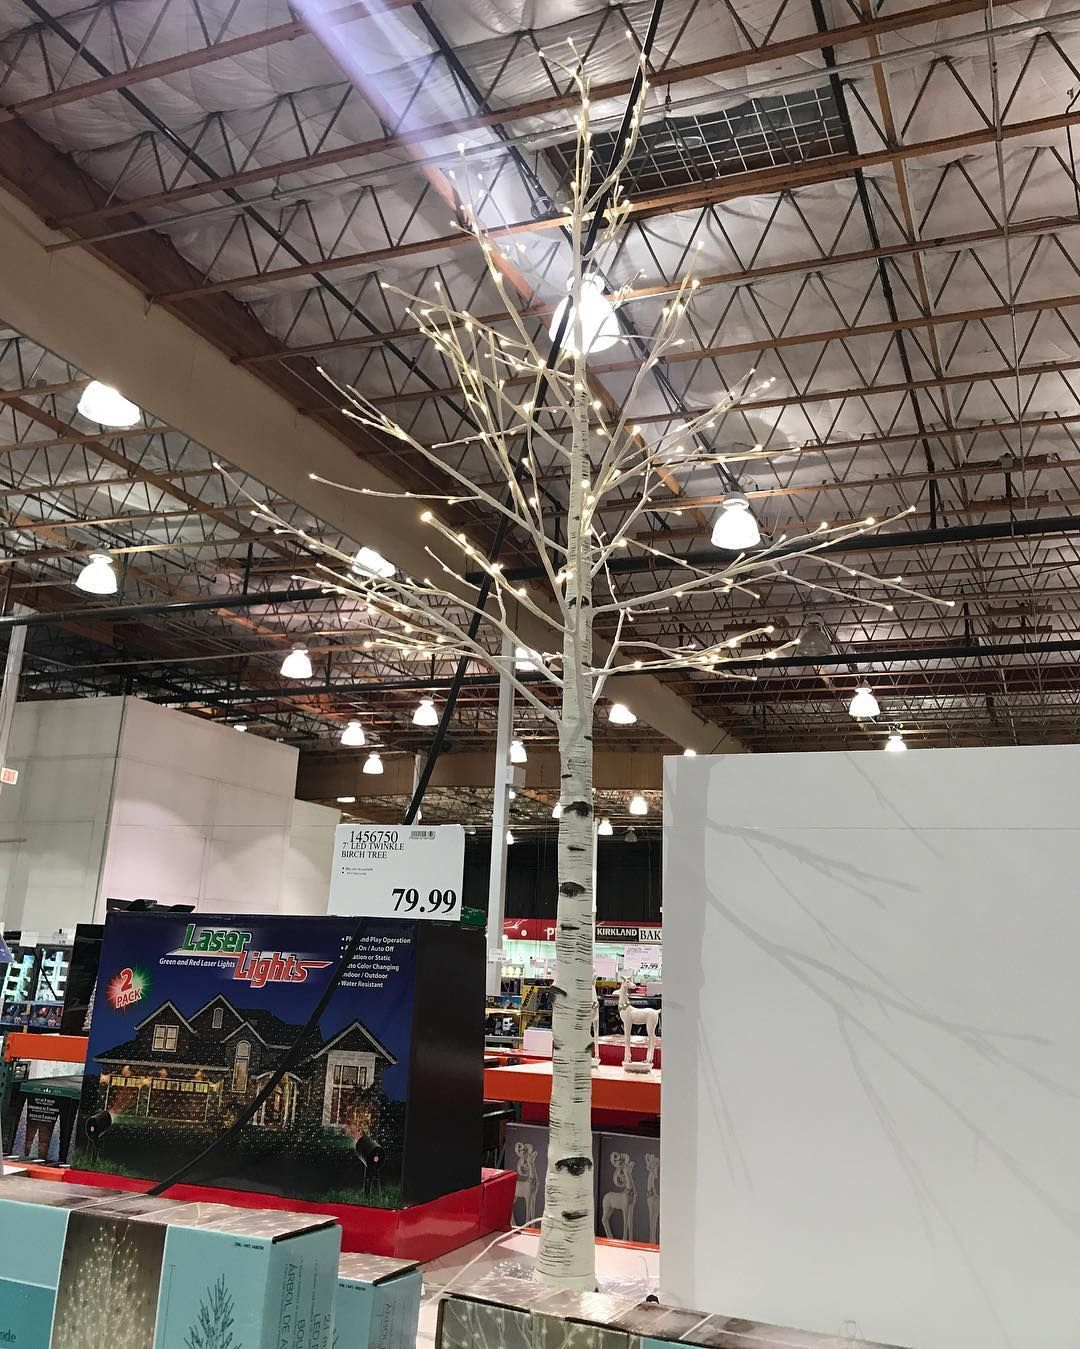 Costco Led Christmas Tree: Beautiful 7' #led Twinkle #birchtree Only $79.99